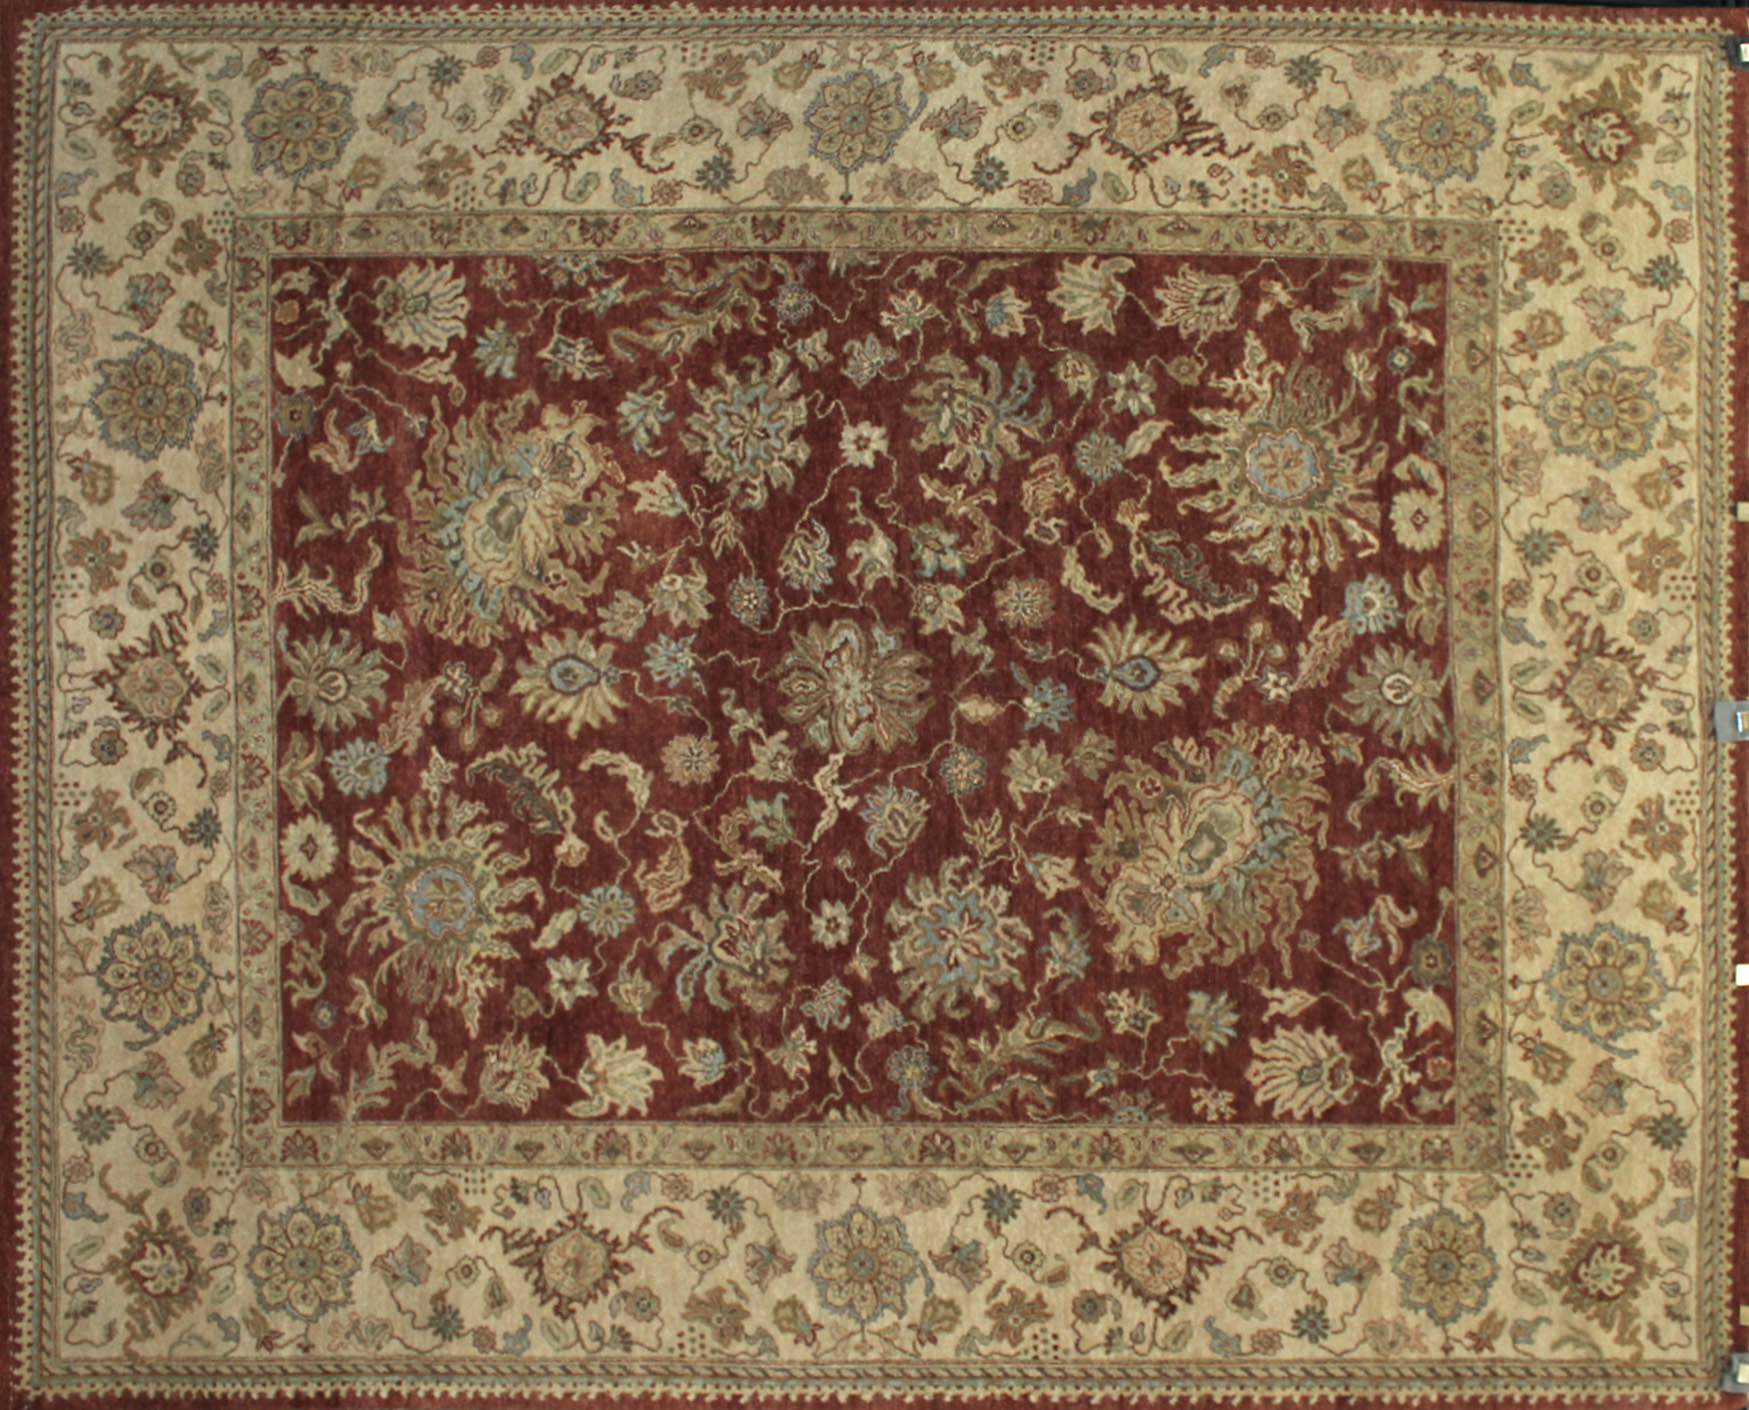 8x10 Traditional Hand Knotted Wool Area Rug - MR8769